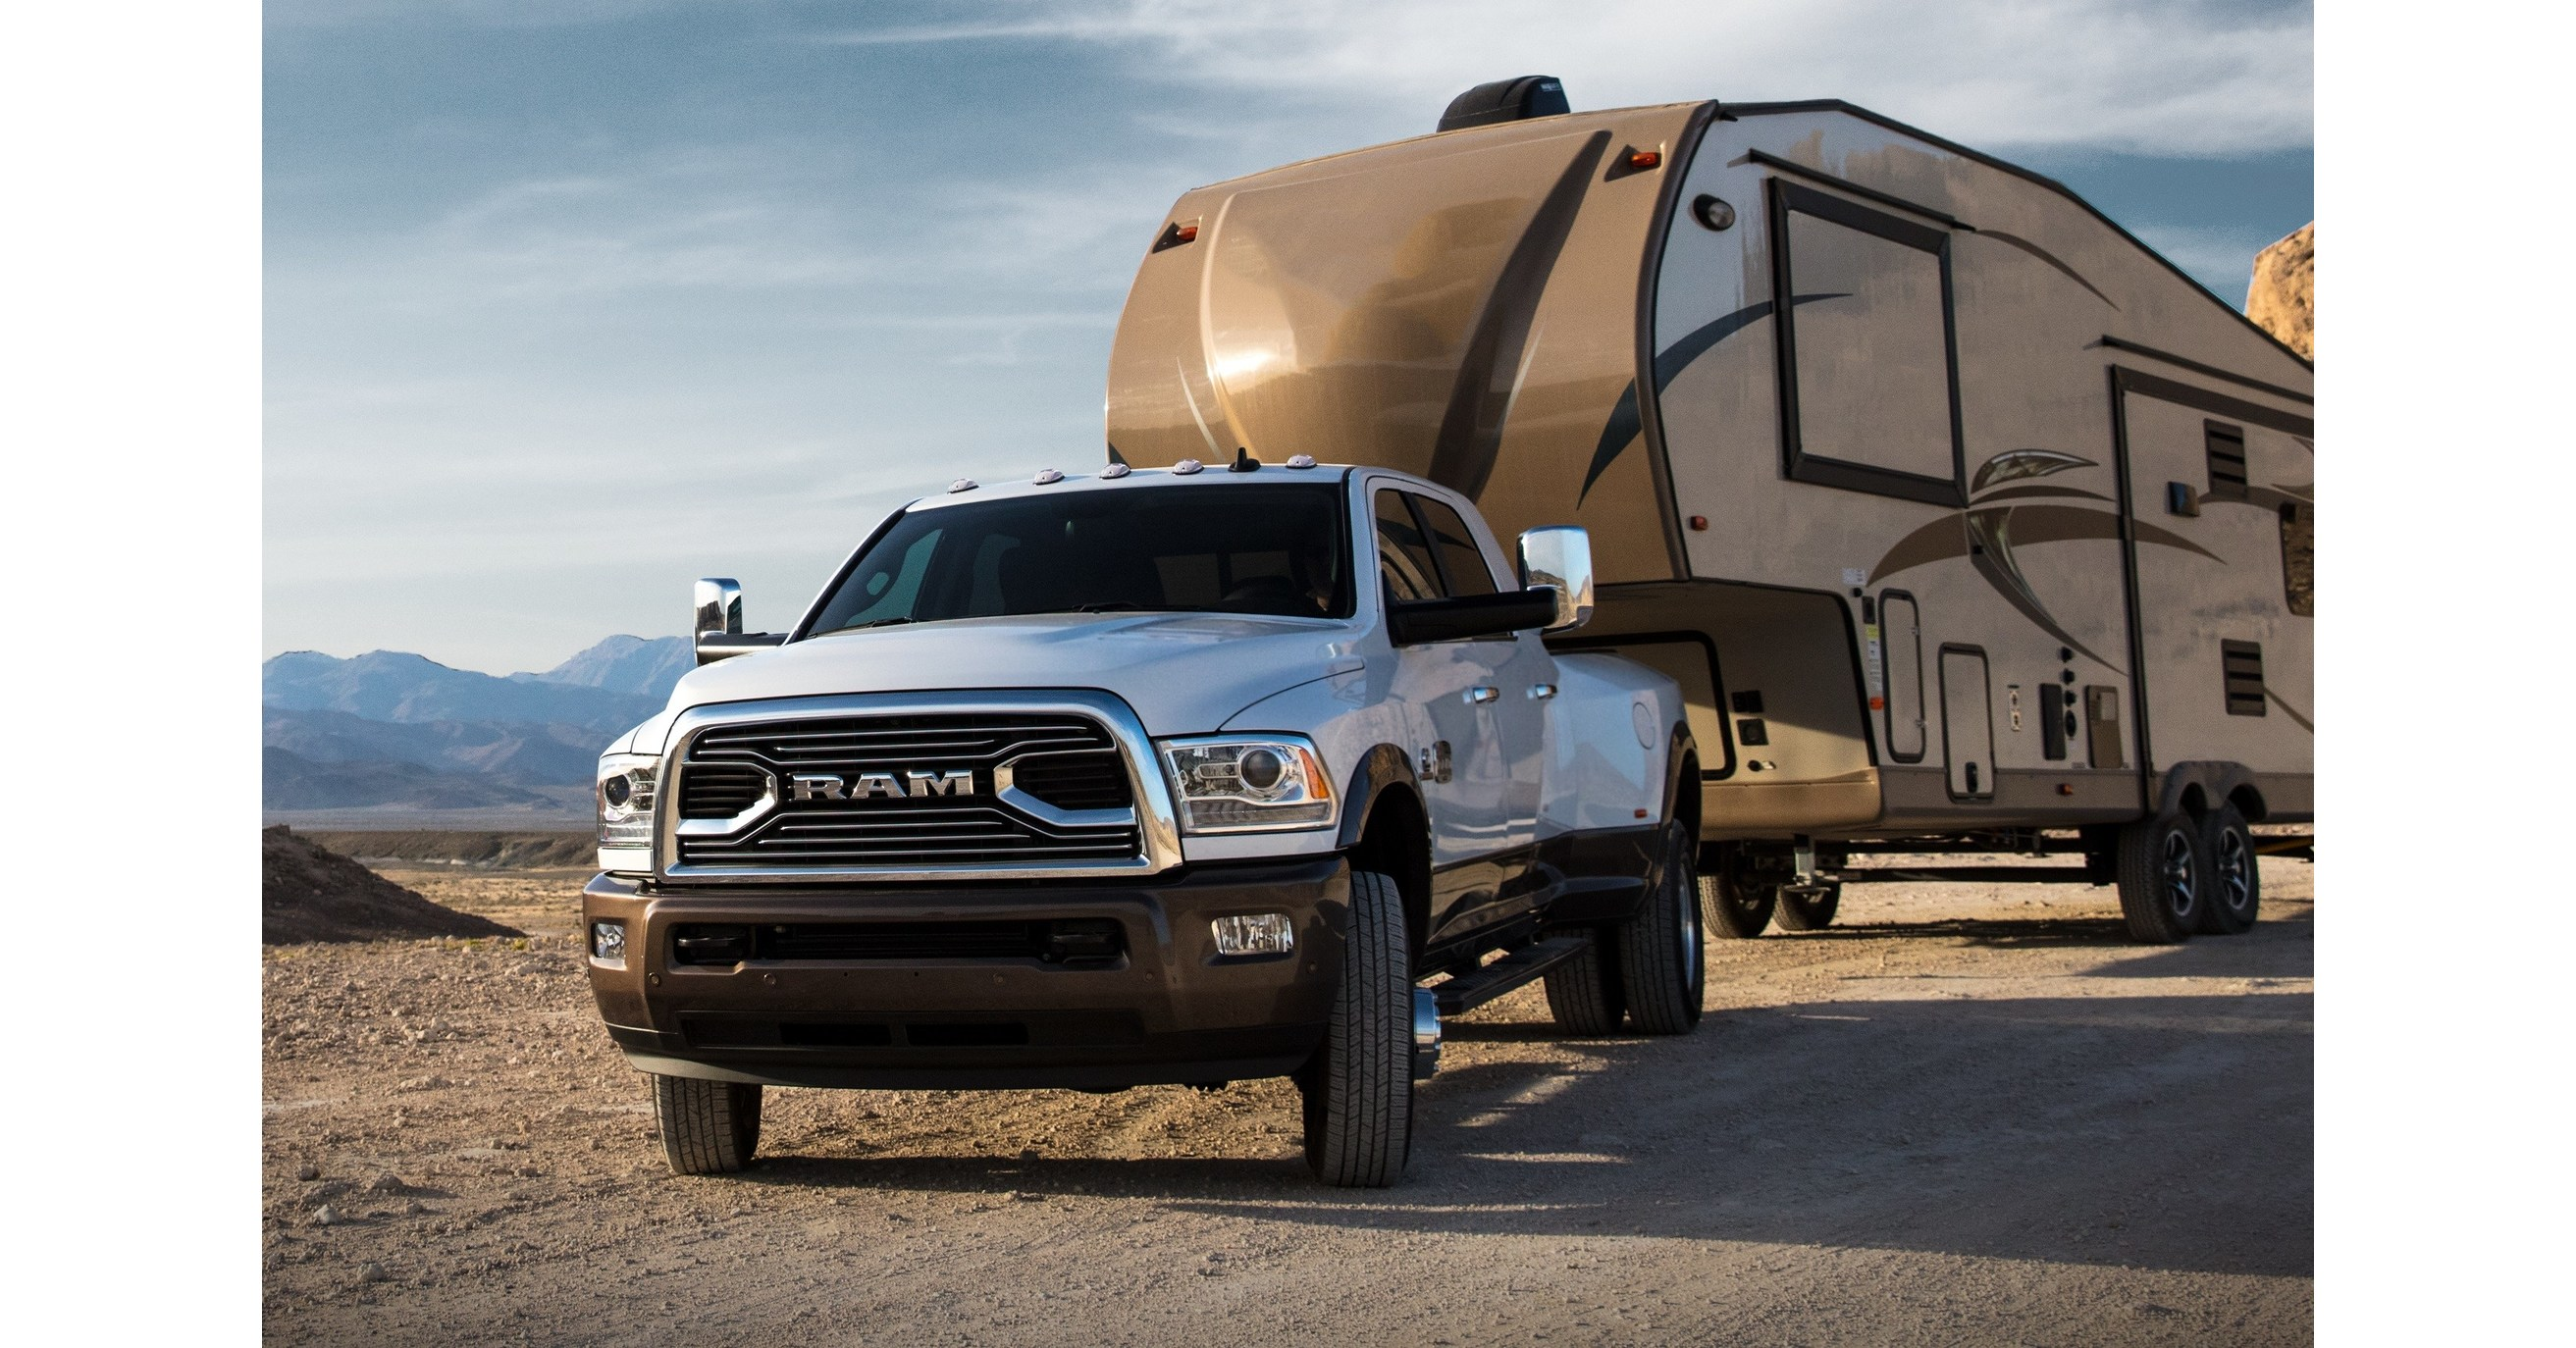 Ram truck reveals the most powerful pickup 2018 ram 3500 heavy duty launches with chart topping